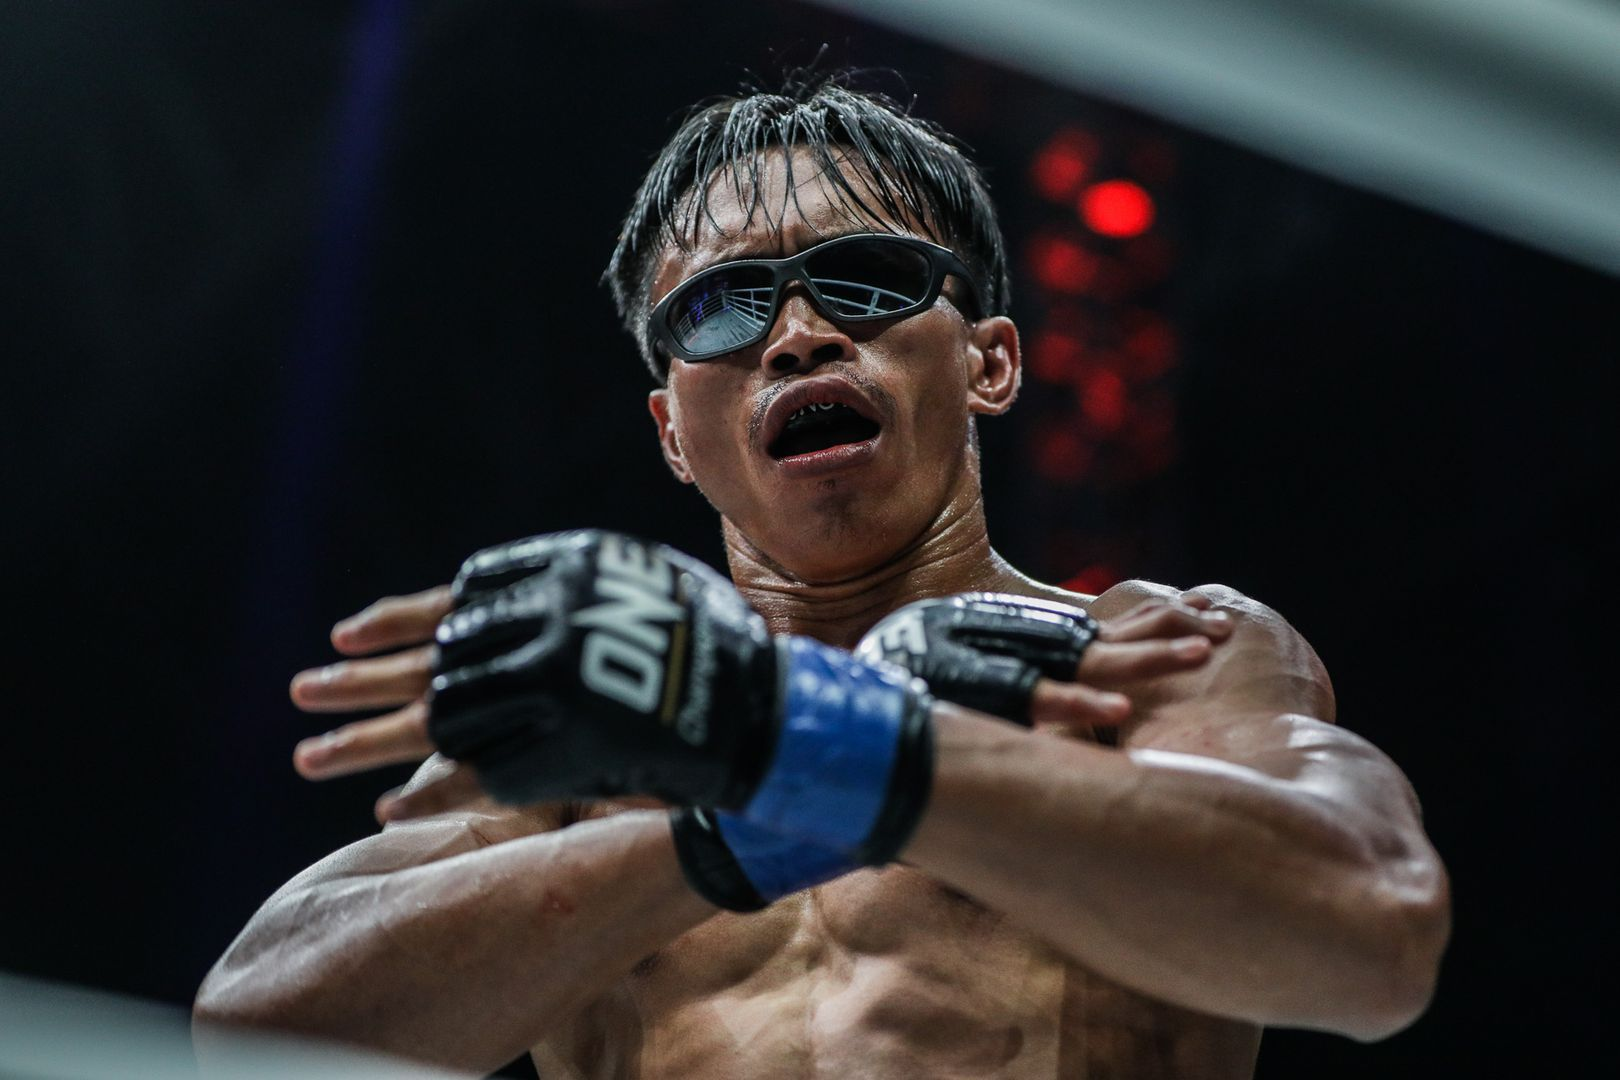 The Terminator Sunoto looks cool in his sunglasses after his victory